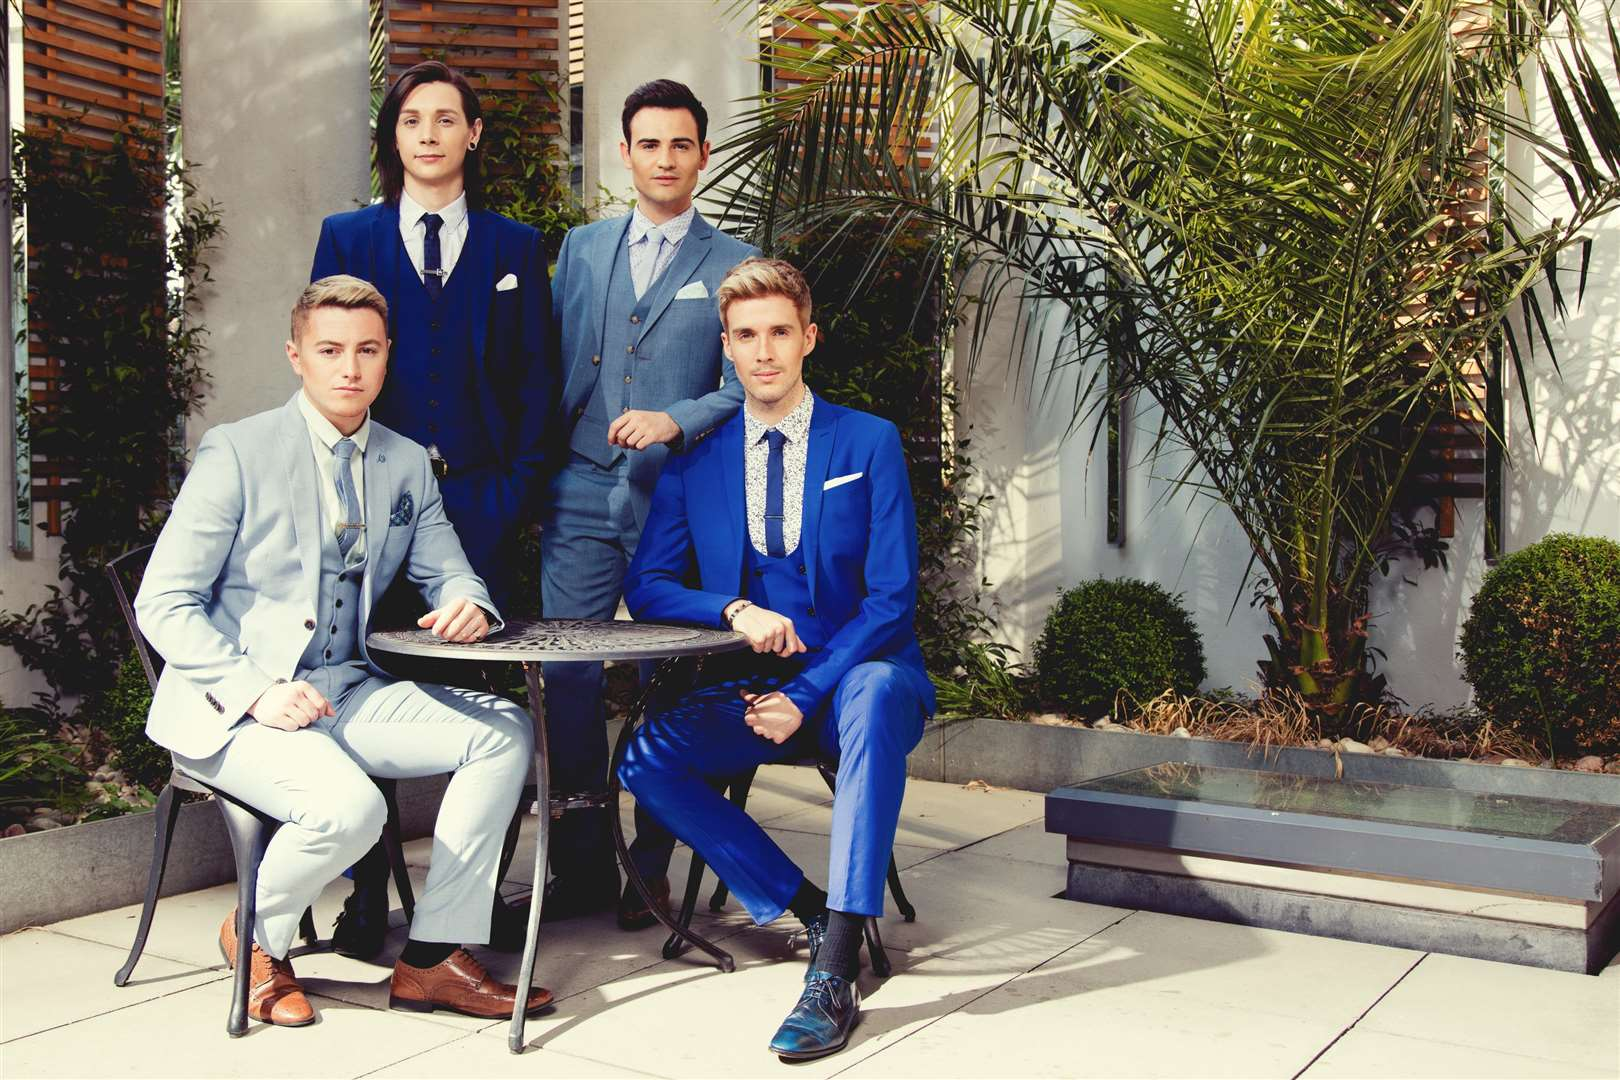 Collabro will also perform at the four-night event